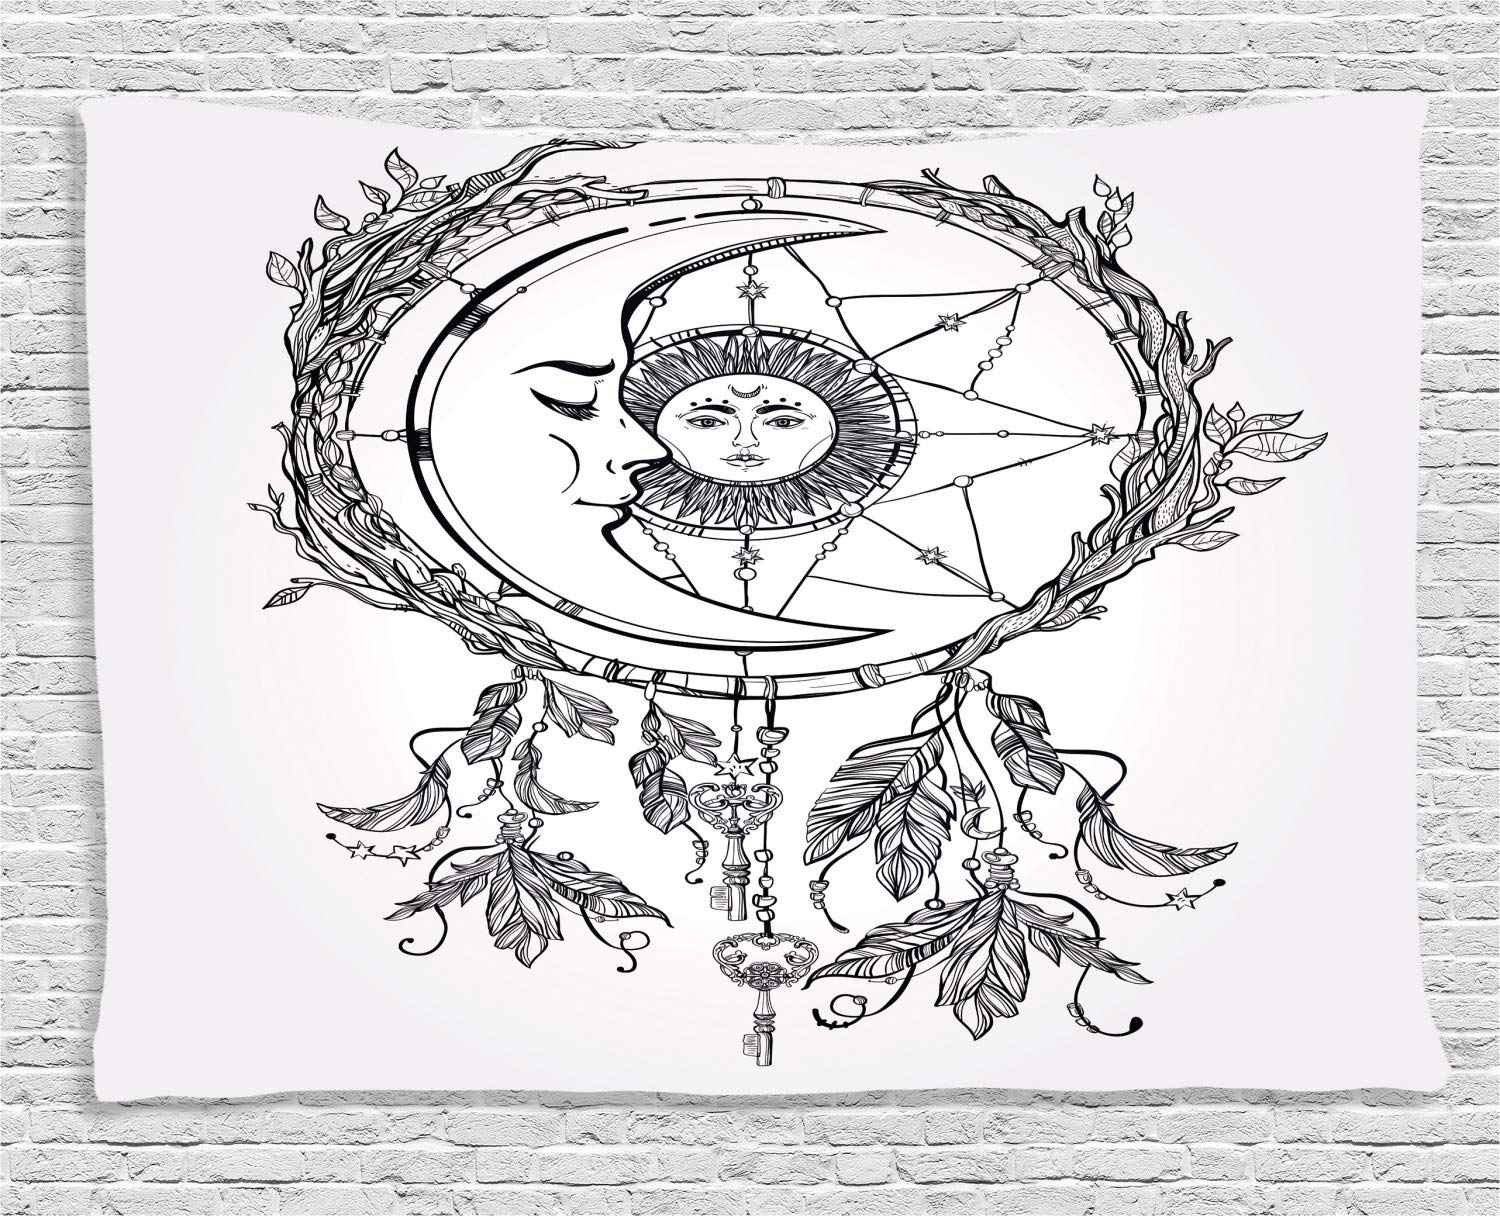 Ambesonne Tribal Tapestry Wall Hanging 80 W X 60 L Inches Bedroom Living Room Dorm Decor Black White Tribal Ethnic Dreamcatcher Feathers with Sun and Moon Inside Cosmos Artsy Image